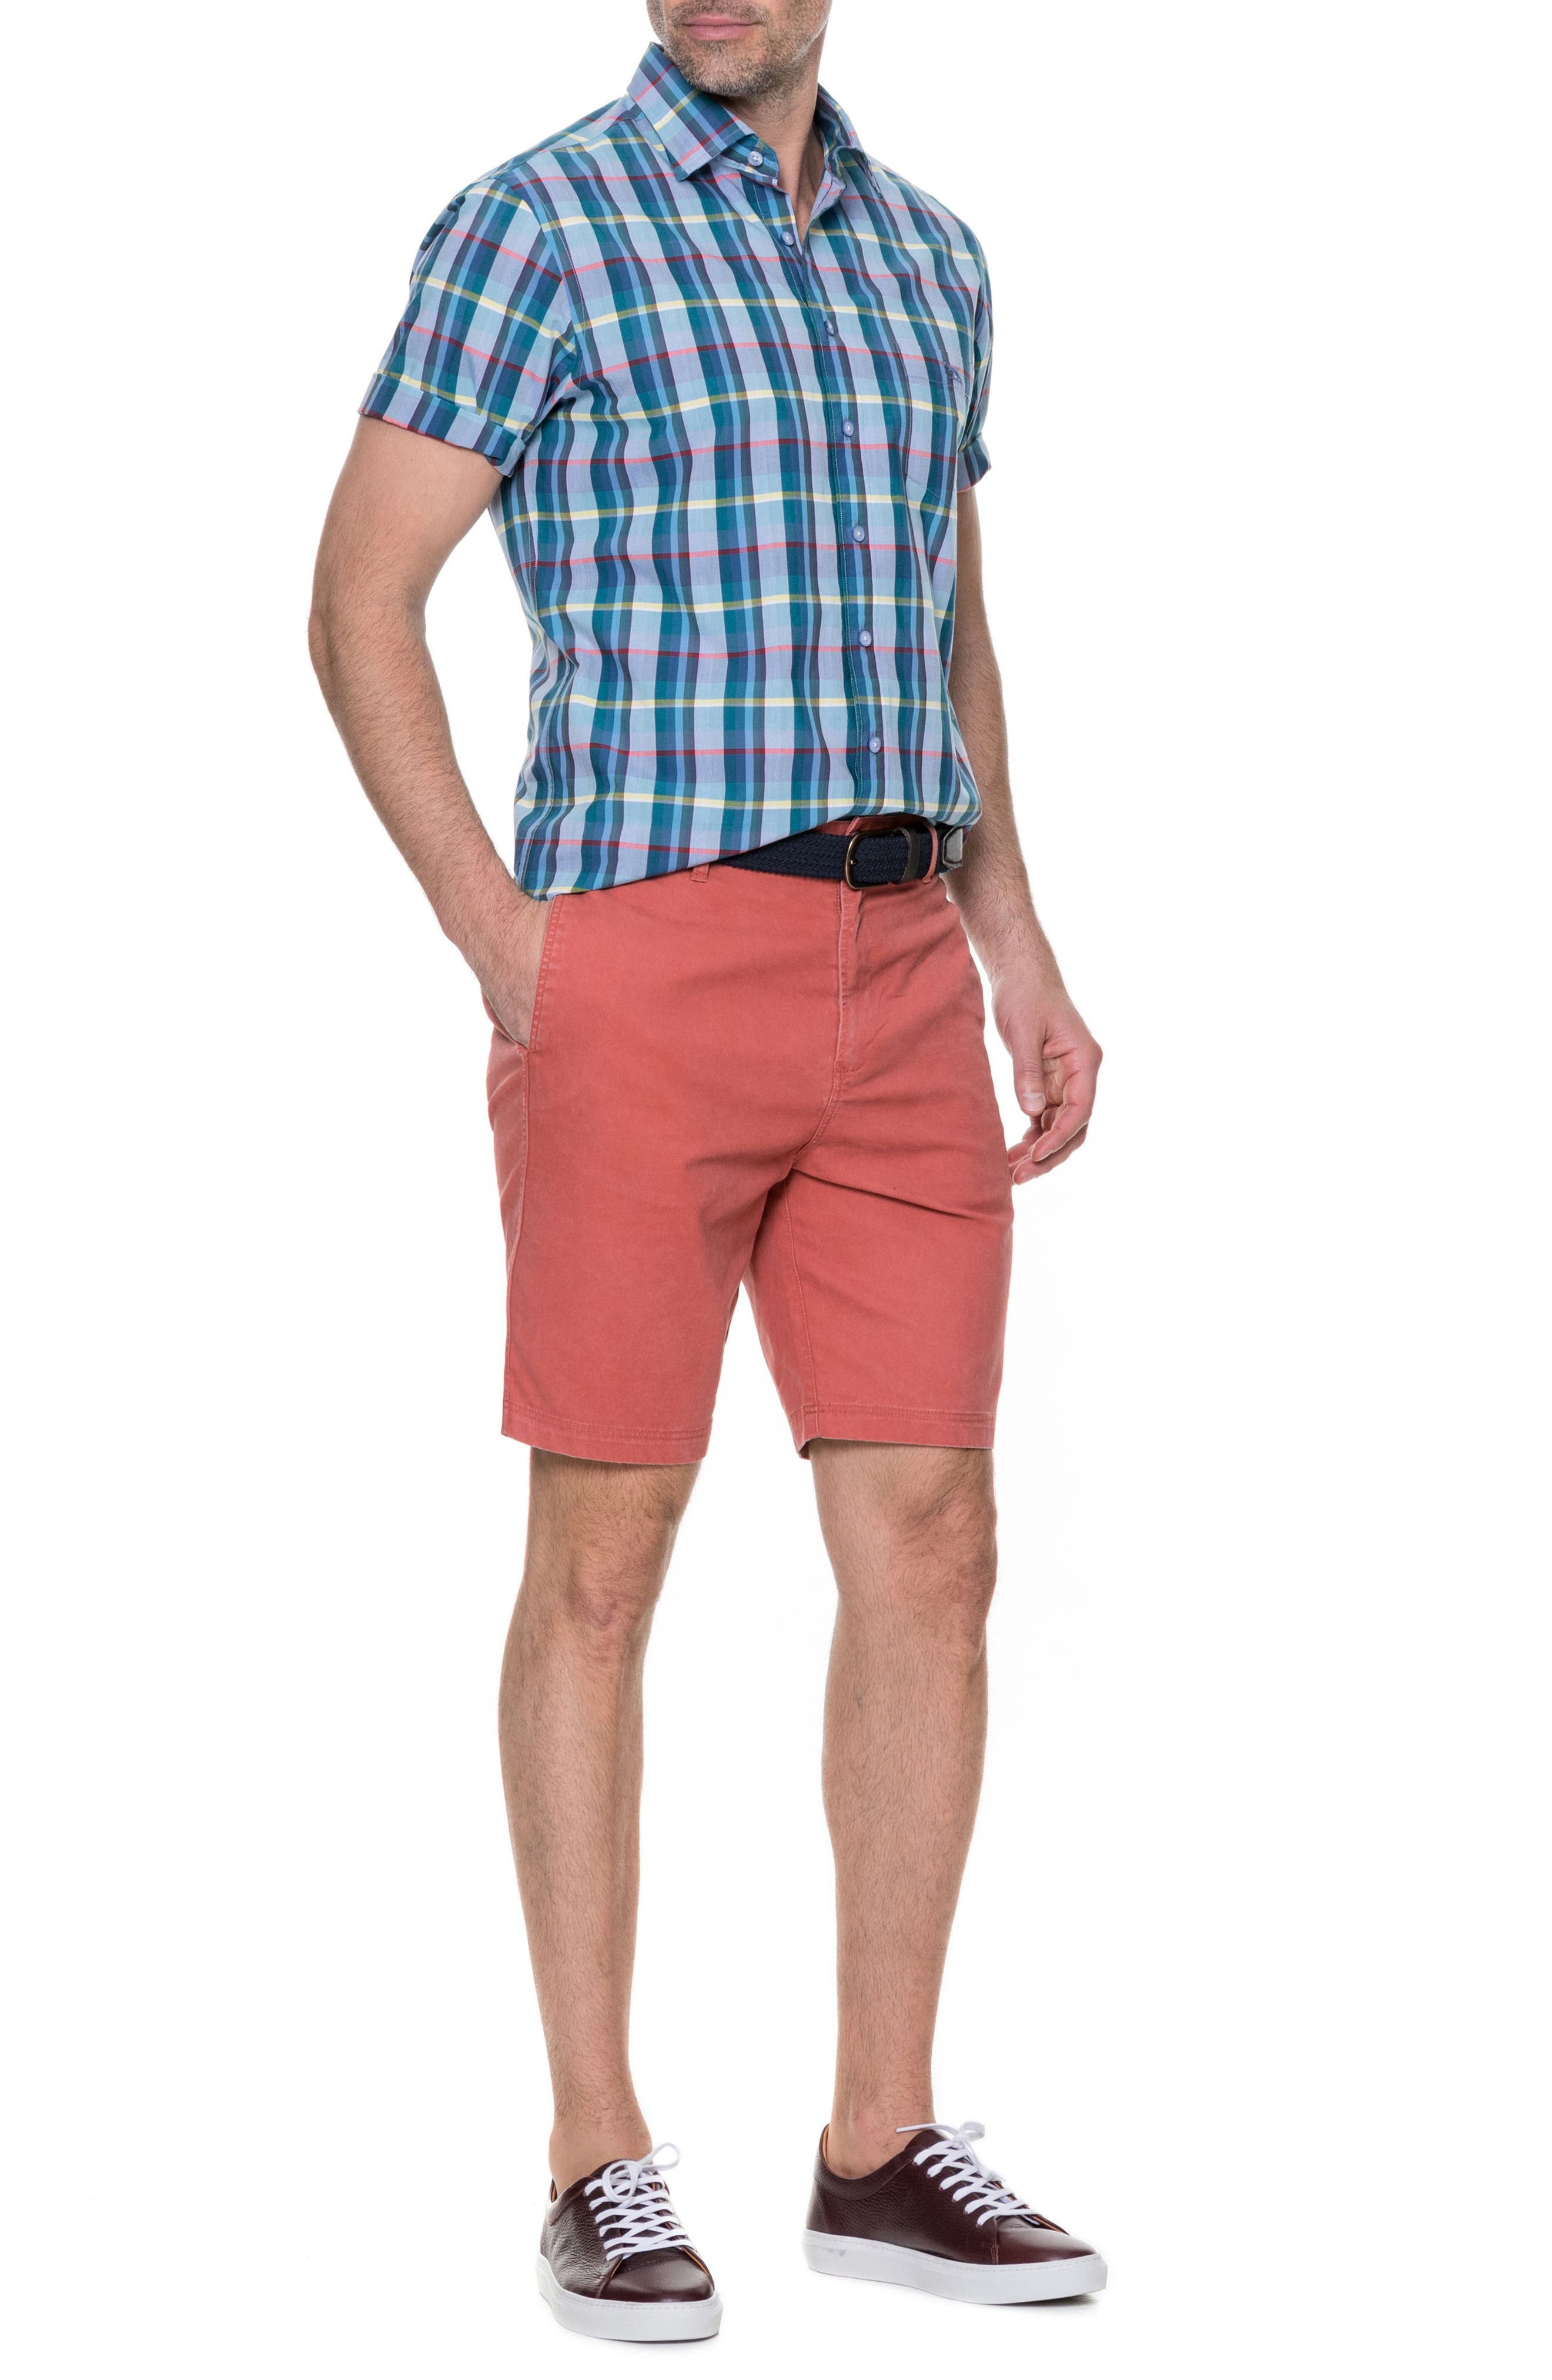 Glenburn Shorts,                             Alternate thumbnail 7, color,                             Red Ochre